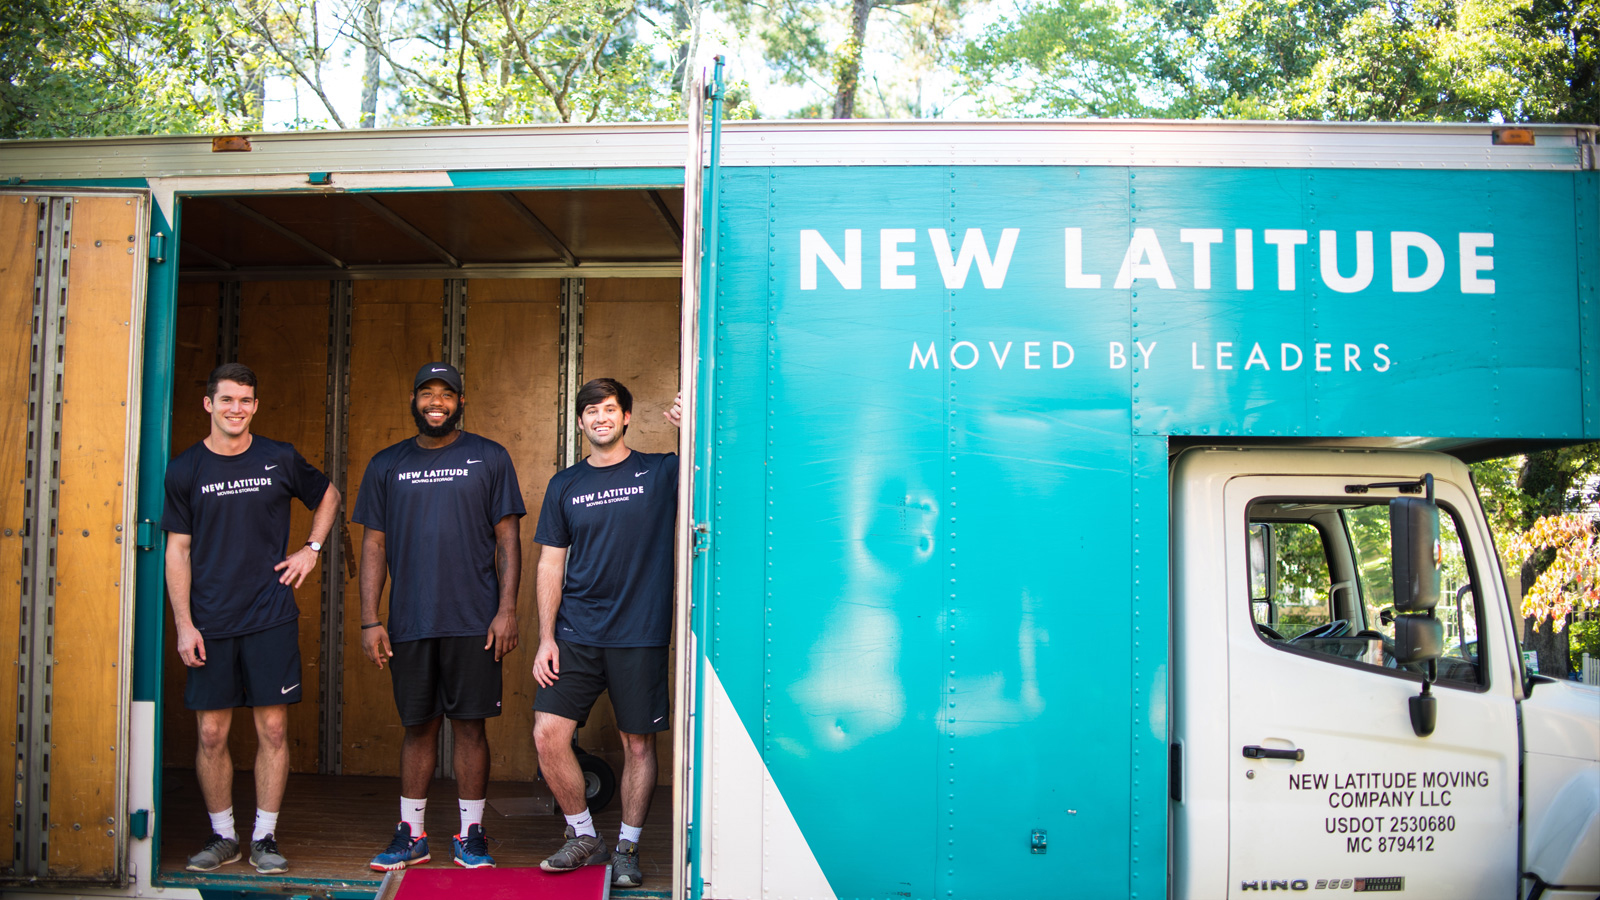 commercial moving, office mover, ff&e, employee relocation, corporate relocation, move management